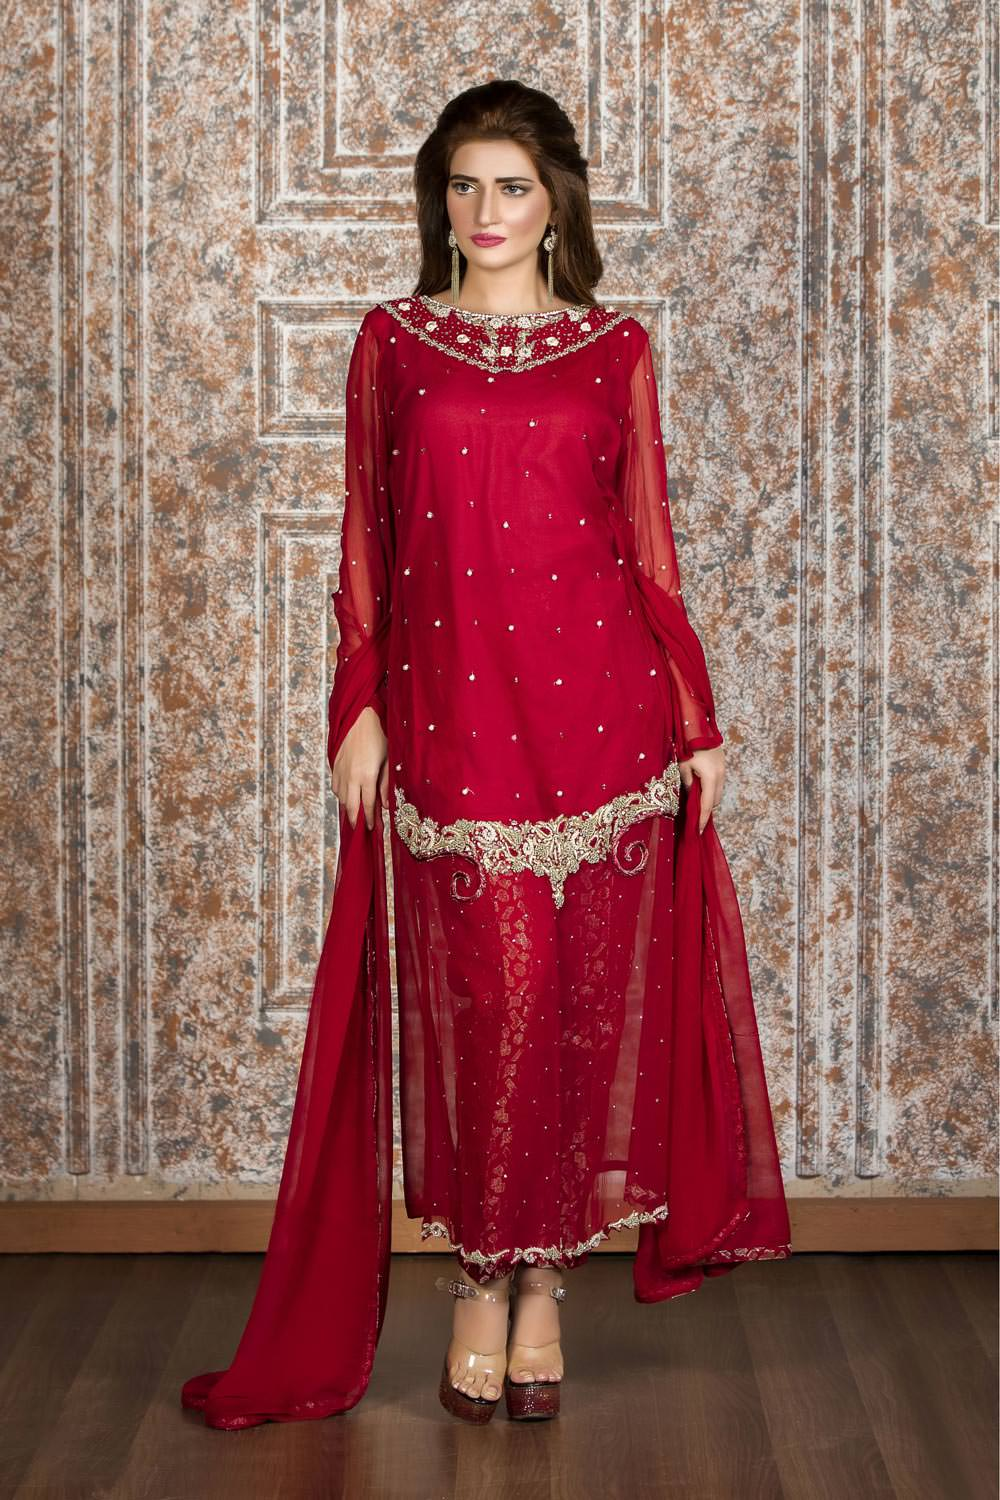 25 latest trends in pakistani party dresses 2018  dresses